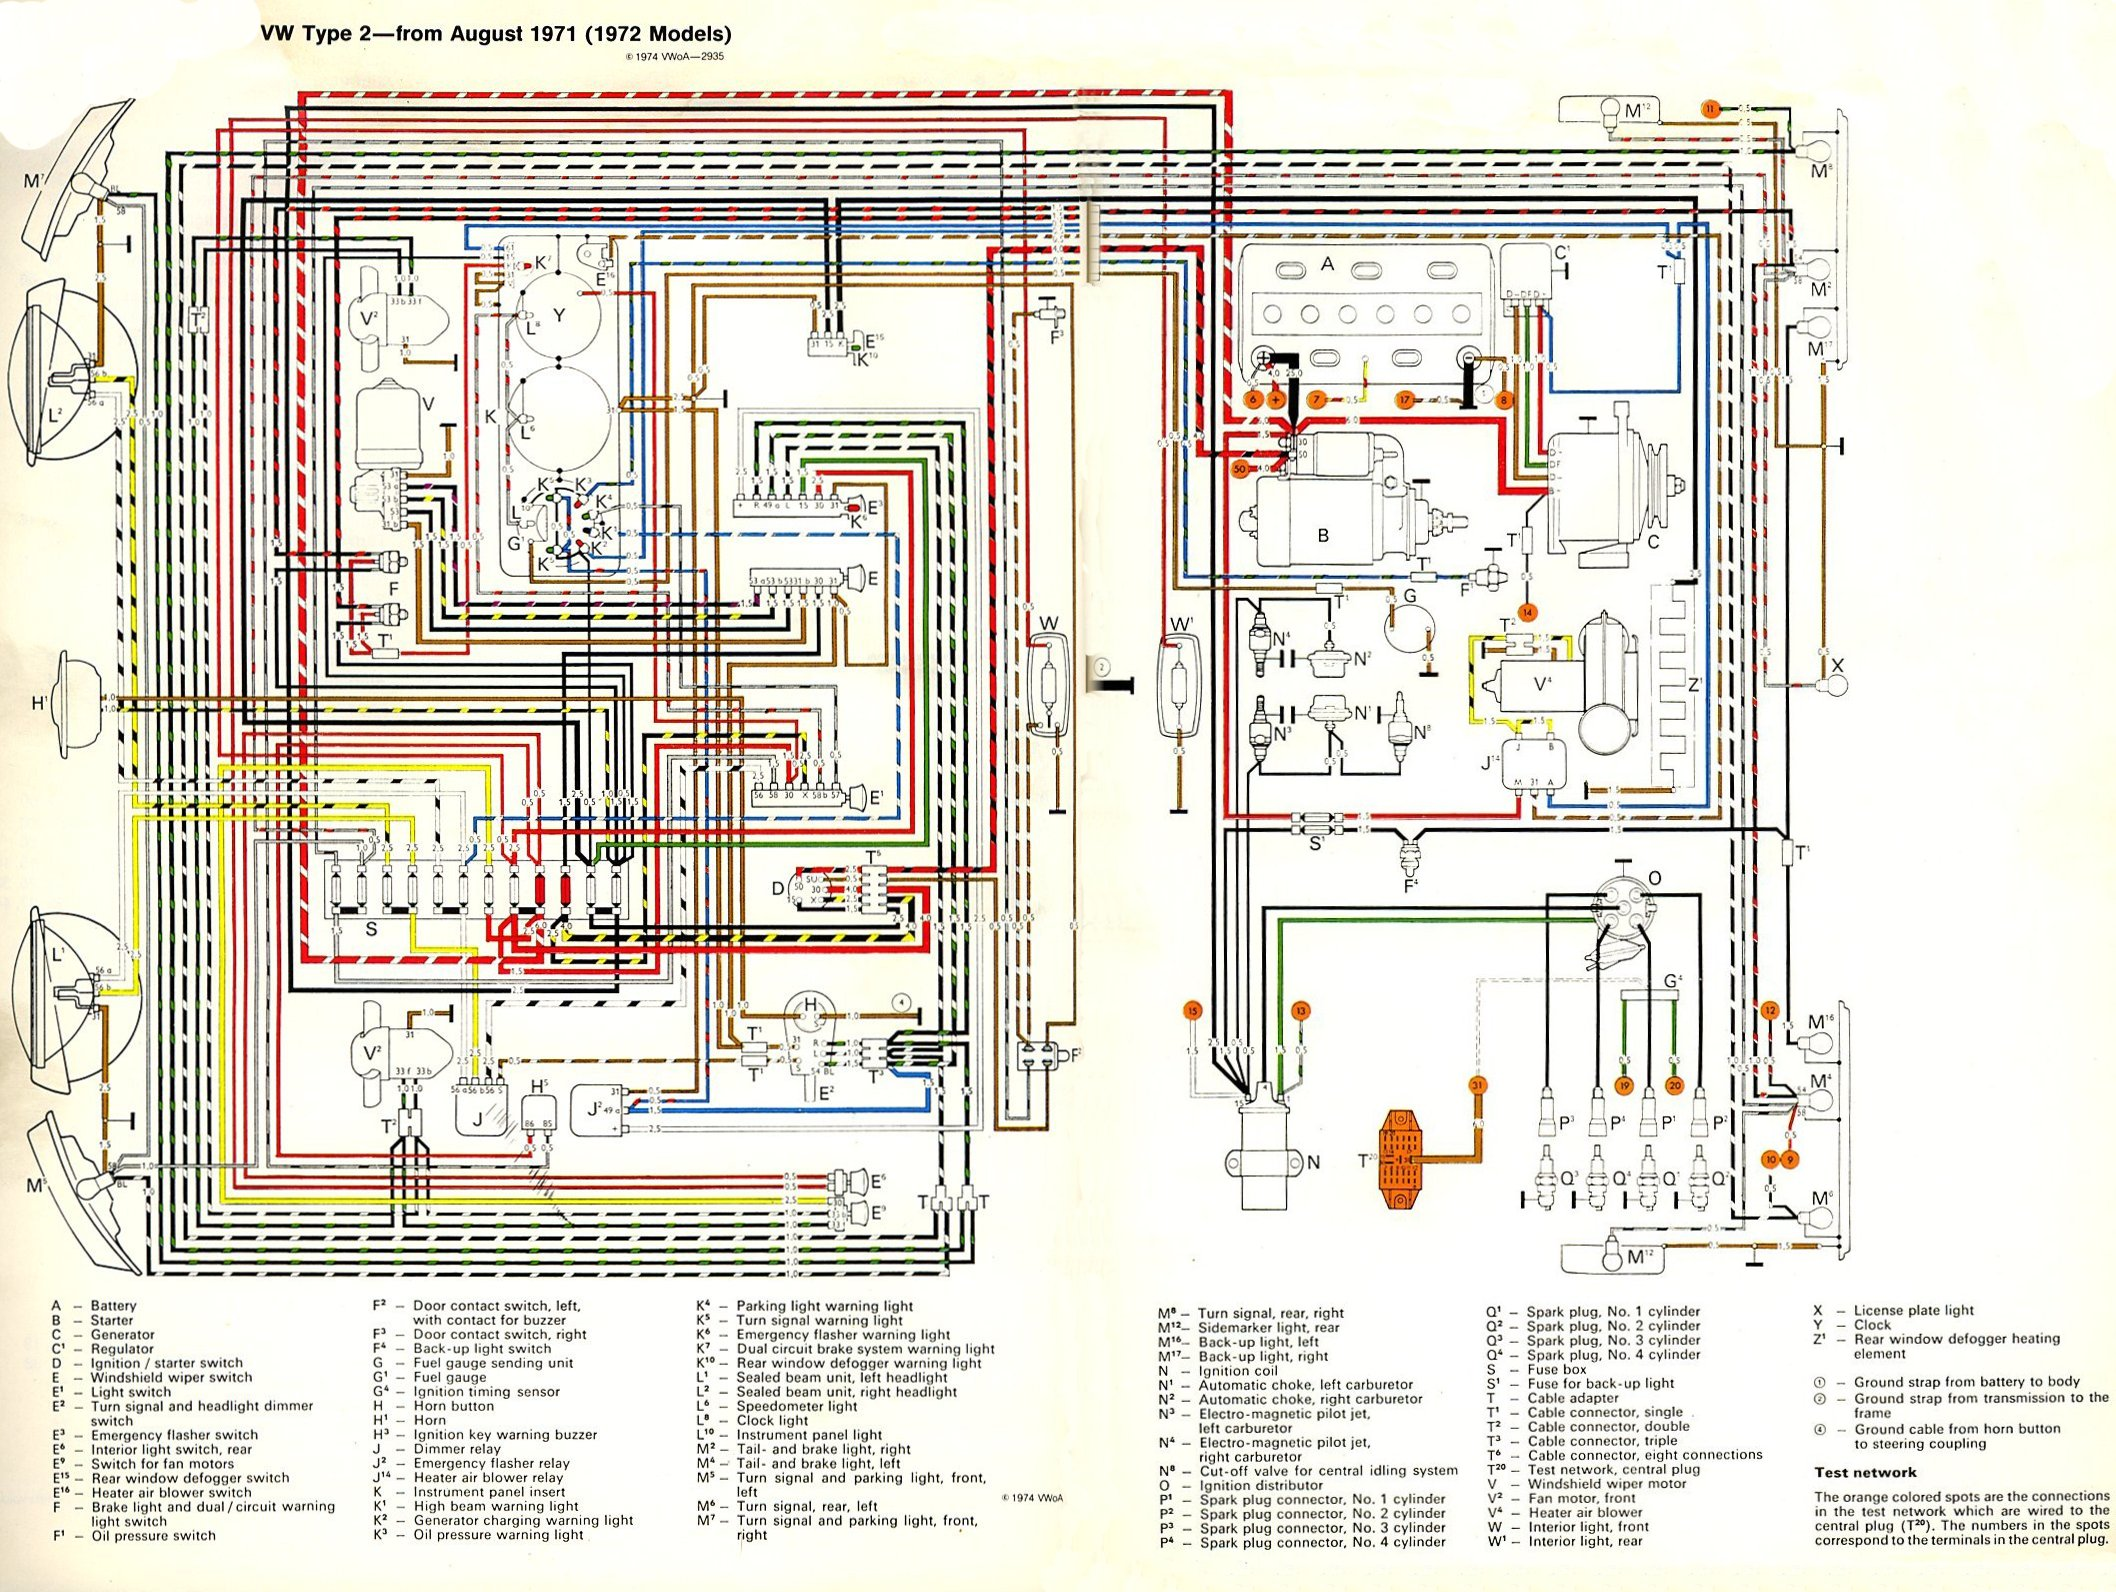 bus_1972_wiring wiring diagram for 1971 vw bus readingrat net 1971 vw bus wiring diagram at mr168.co